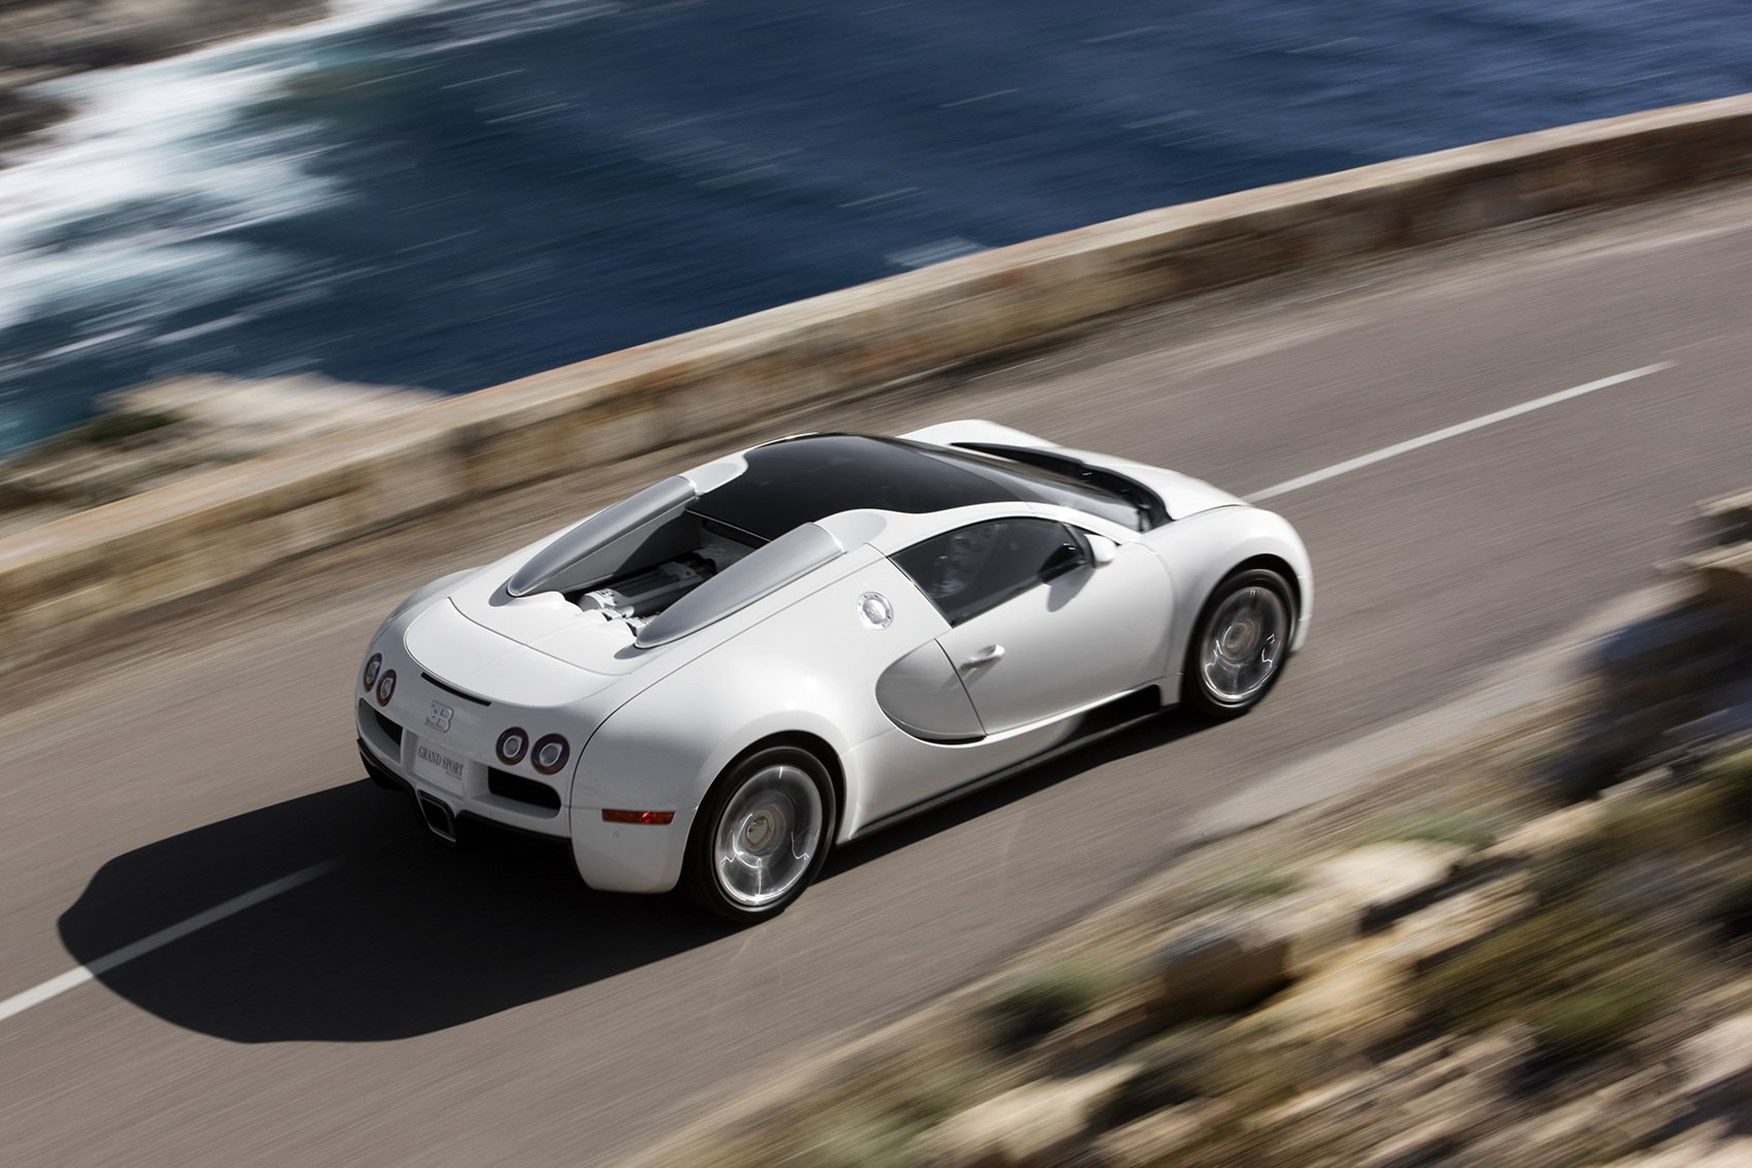 veyron3 Cool Bugatti Veyron Price In Uae 2015 Cars Trend